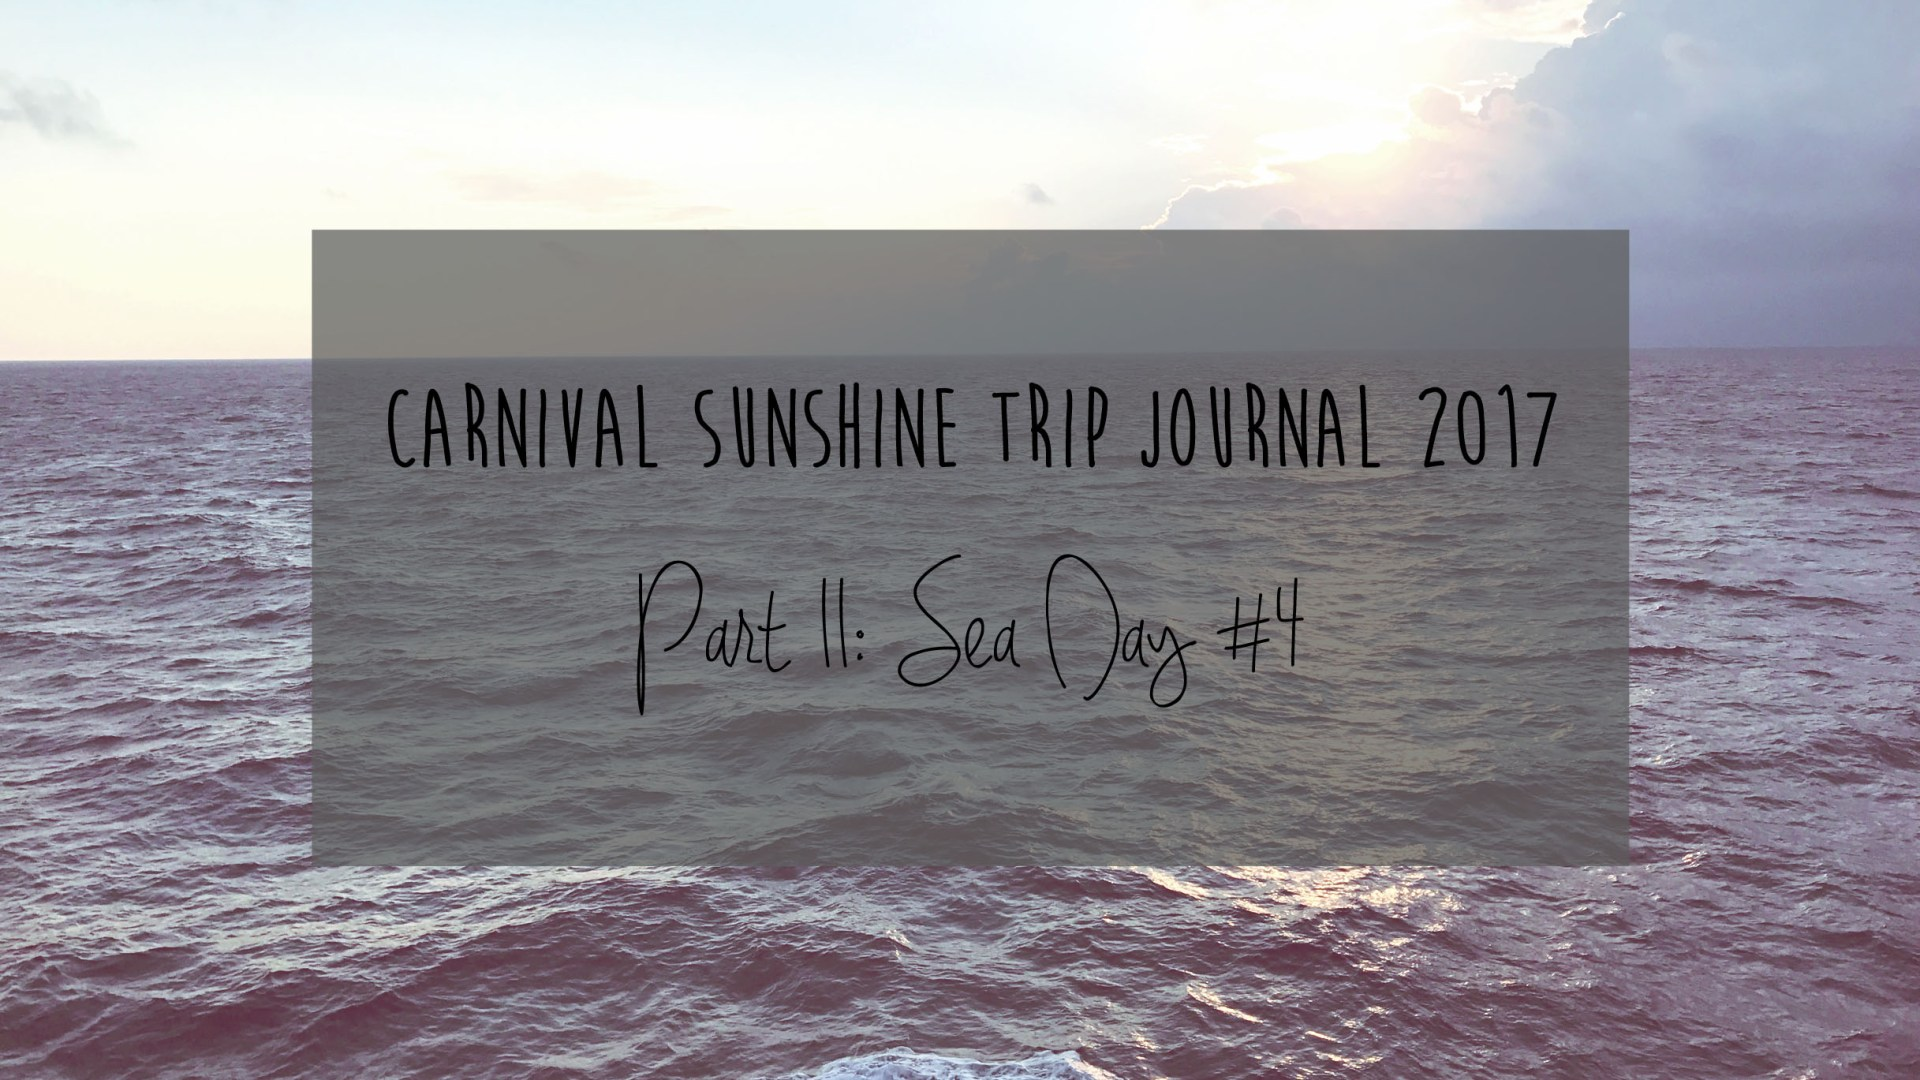 Carnival Sunshine Trip Journal: Part 11 – Sea Day #4 & Debarkation